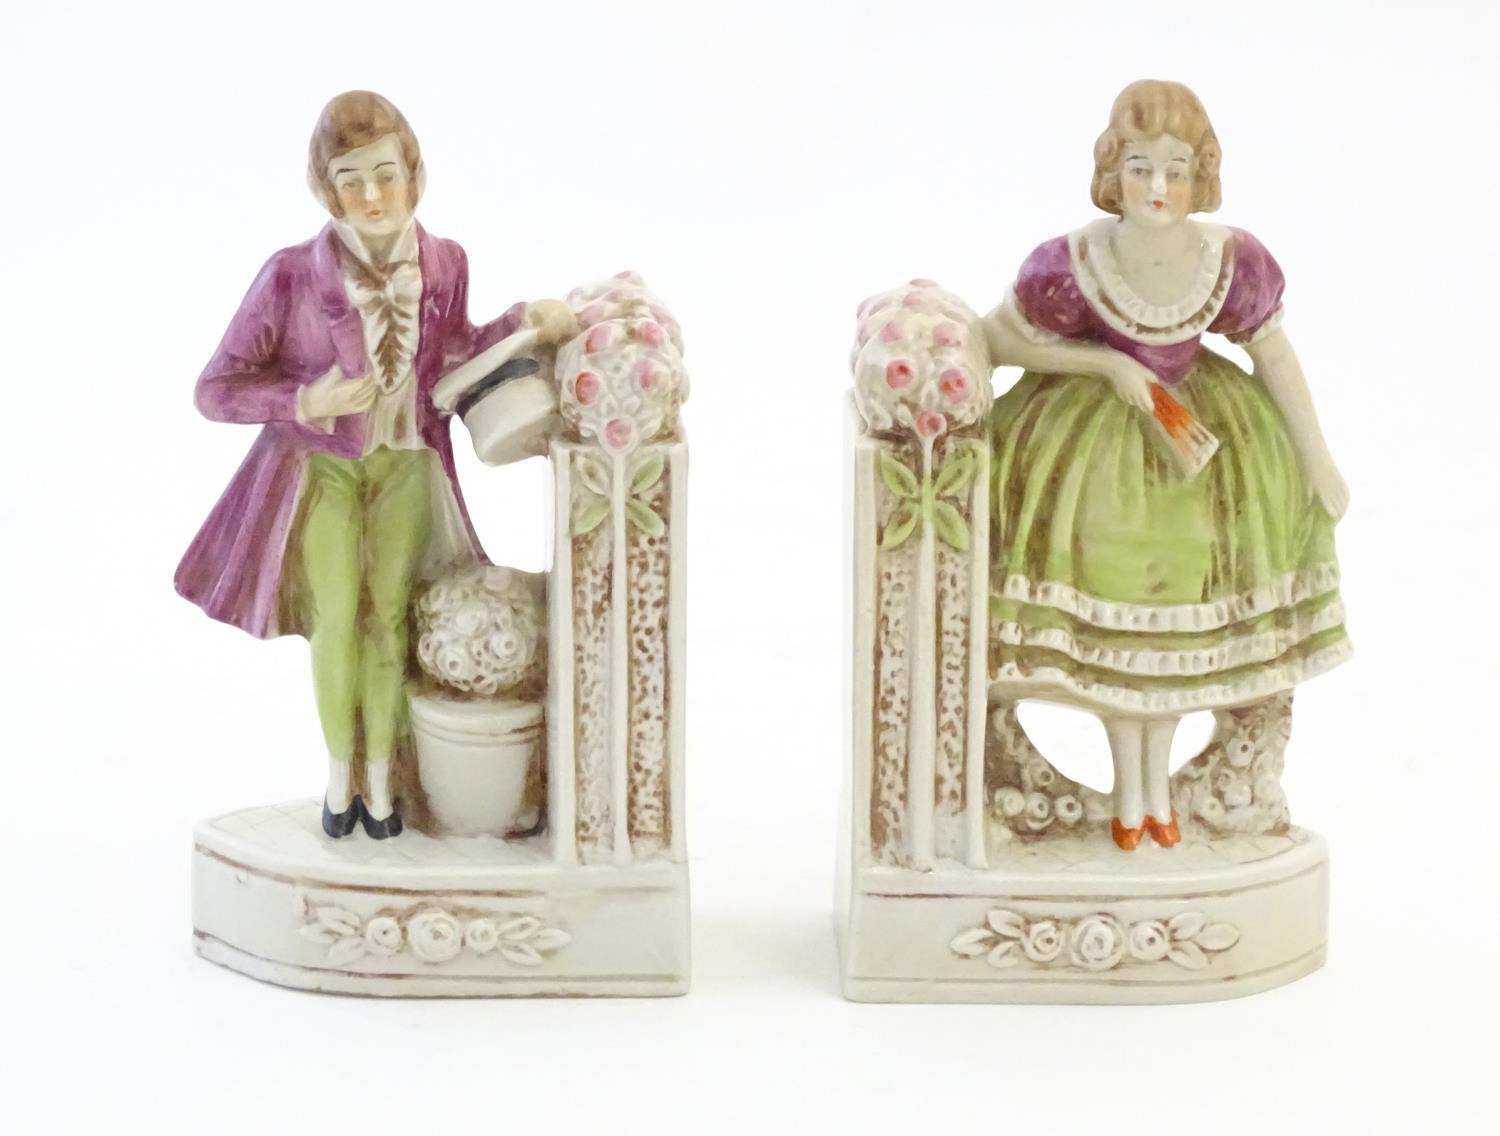 A pair of German porcelain figural bookends depicting a gentleman and a lady with flowers. Marked